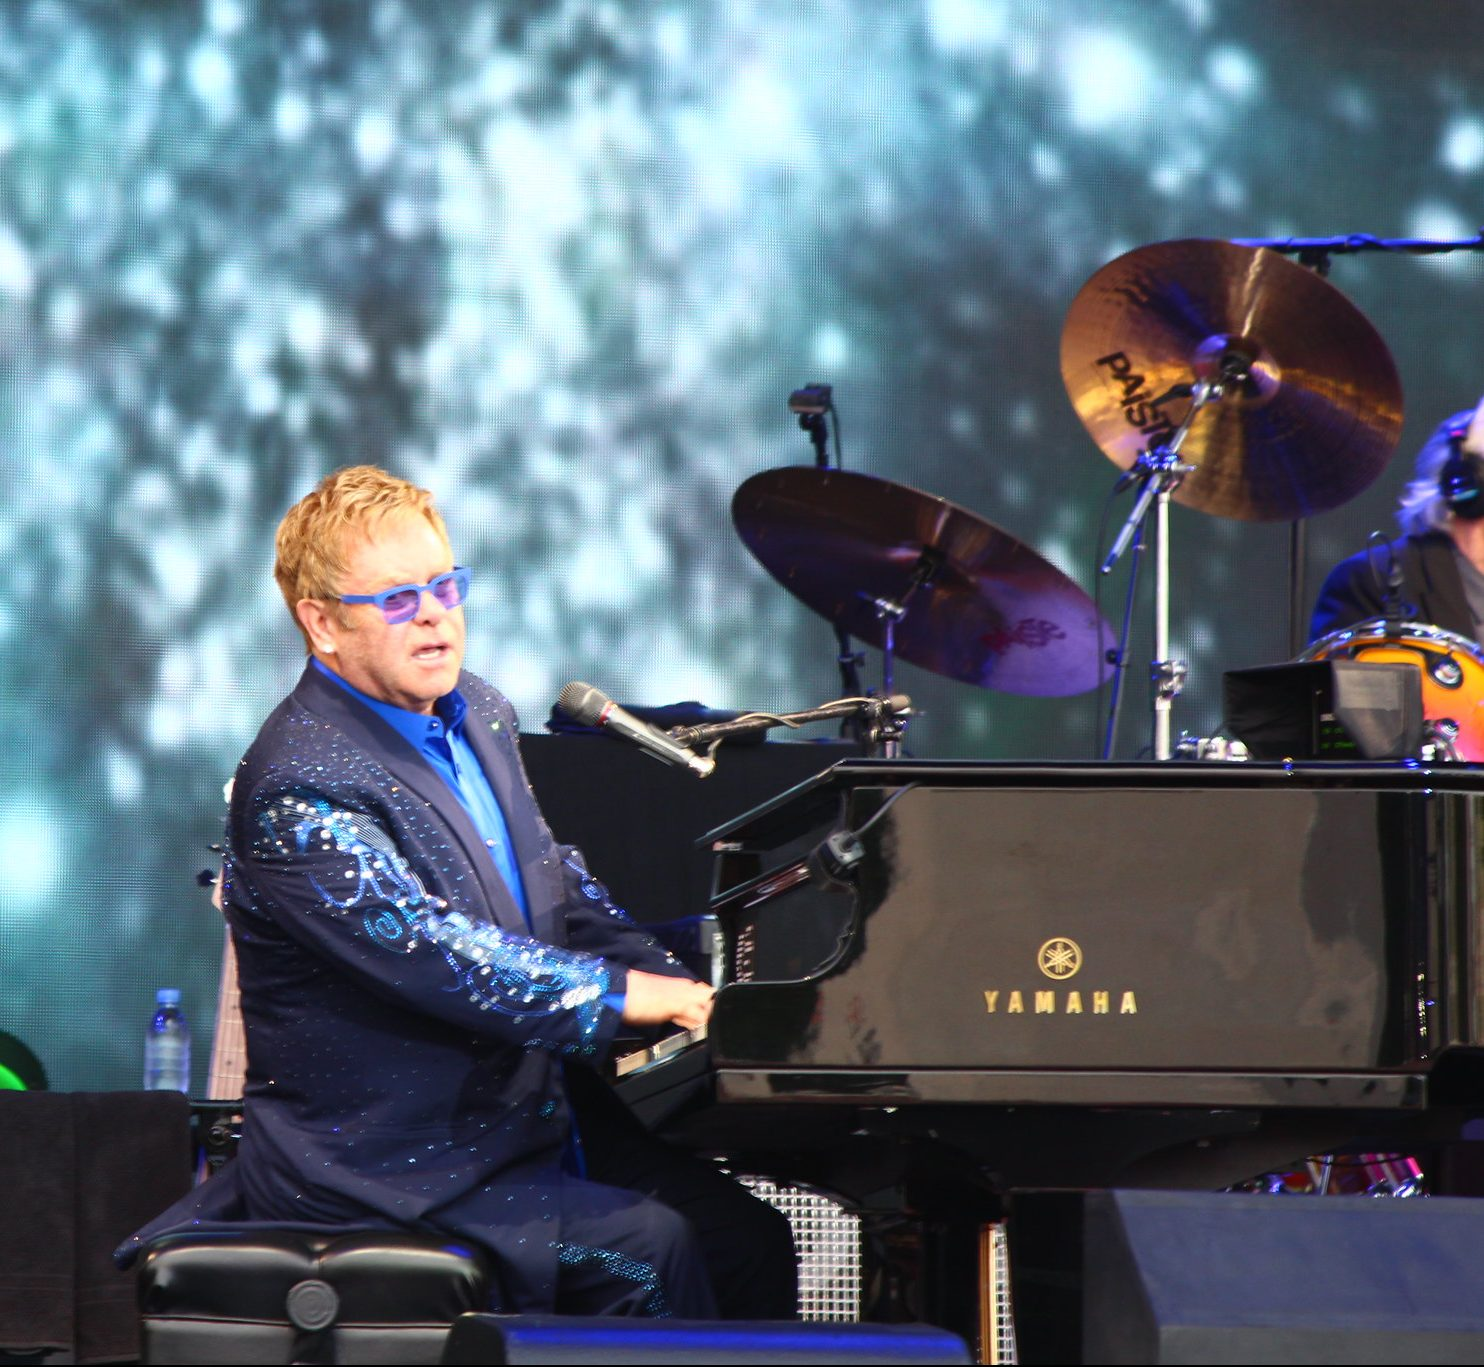 15449028888 35af3e5217 k e1616675720702 23 Things You Didn't Know About Elton John